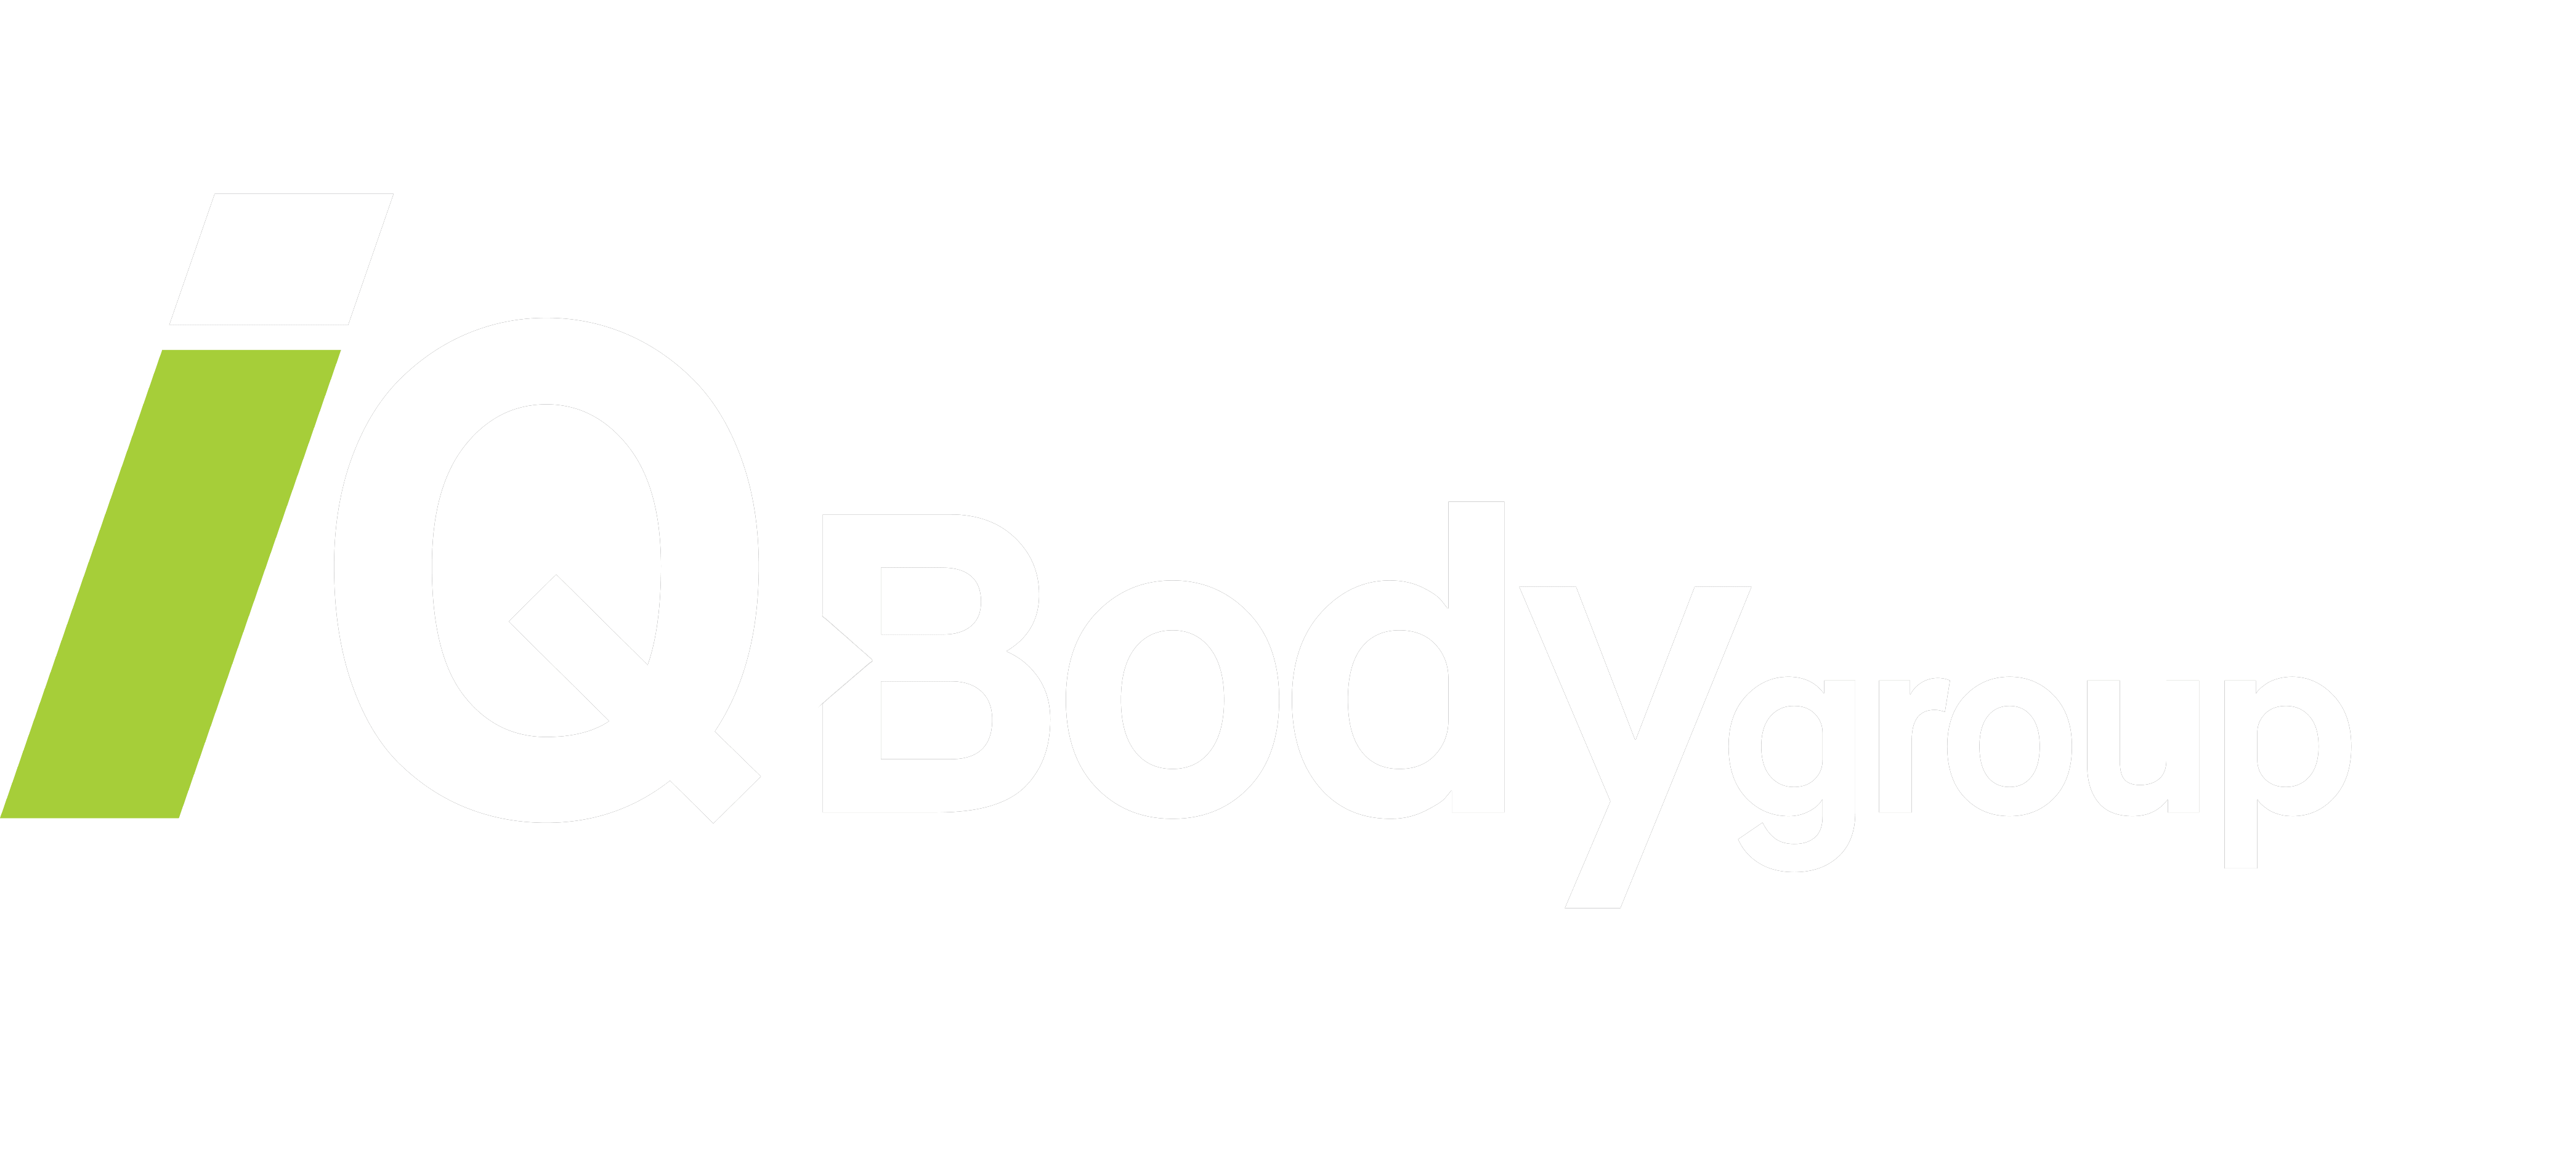 IQBodyGroup